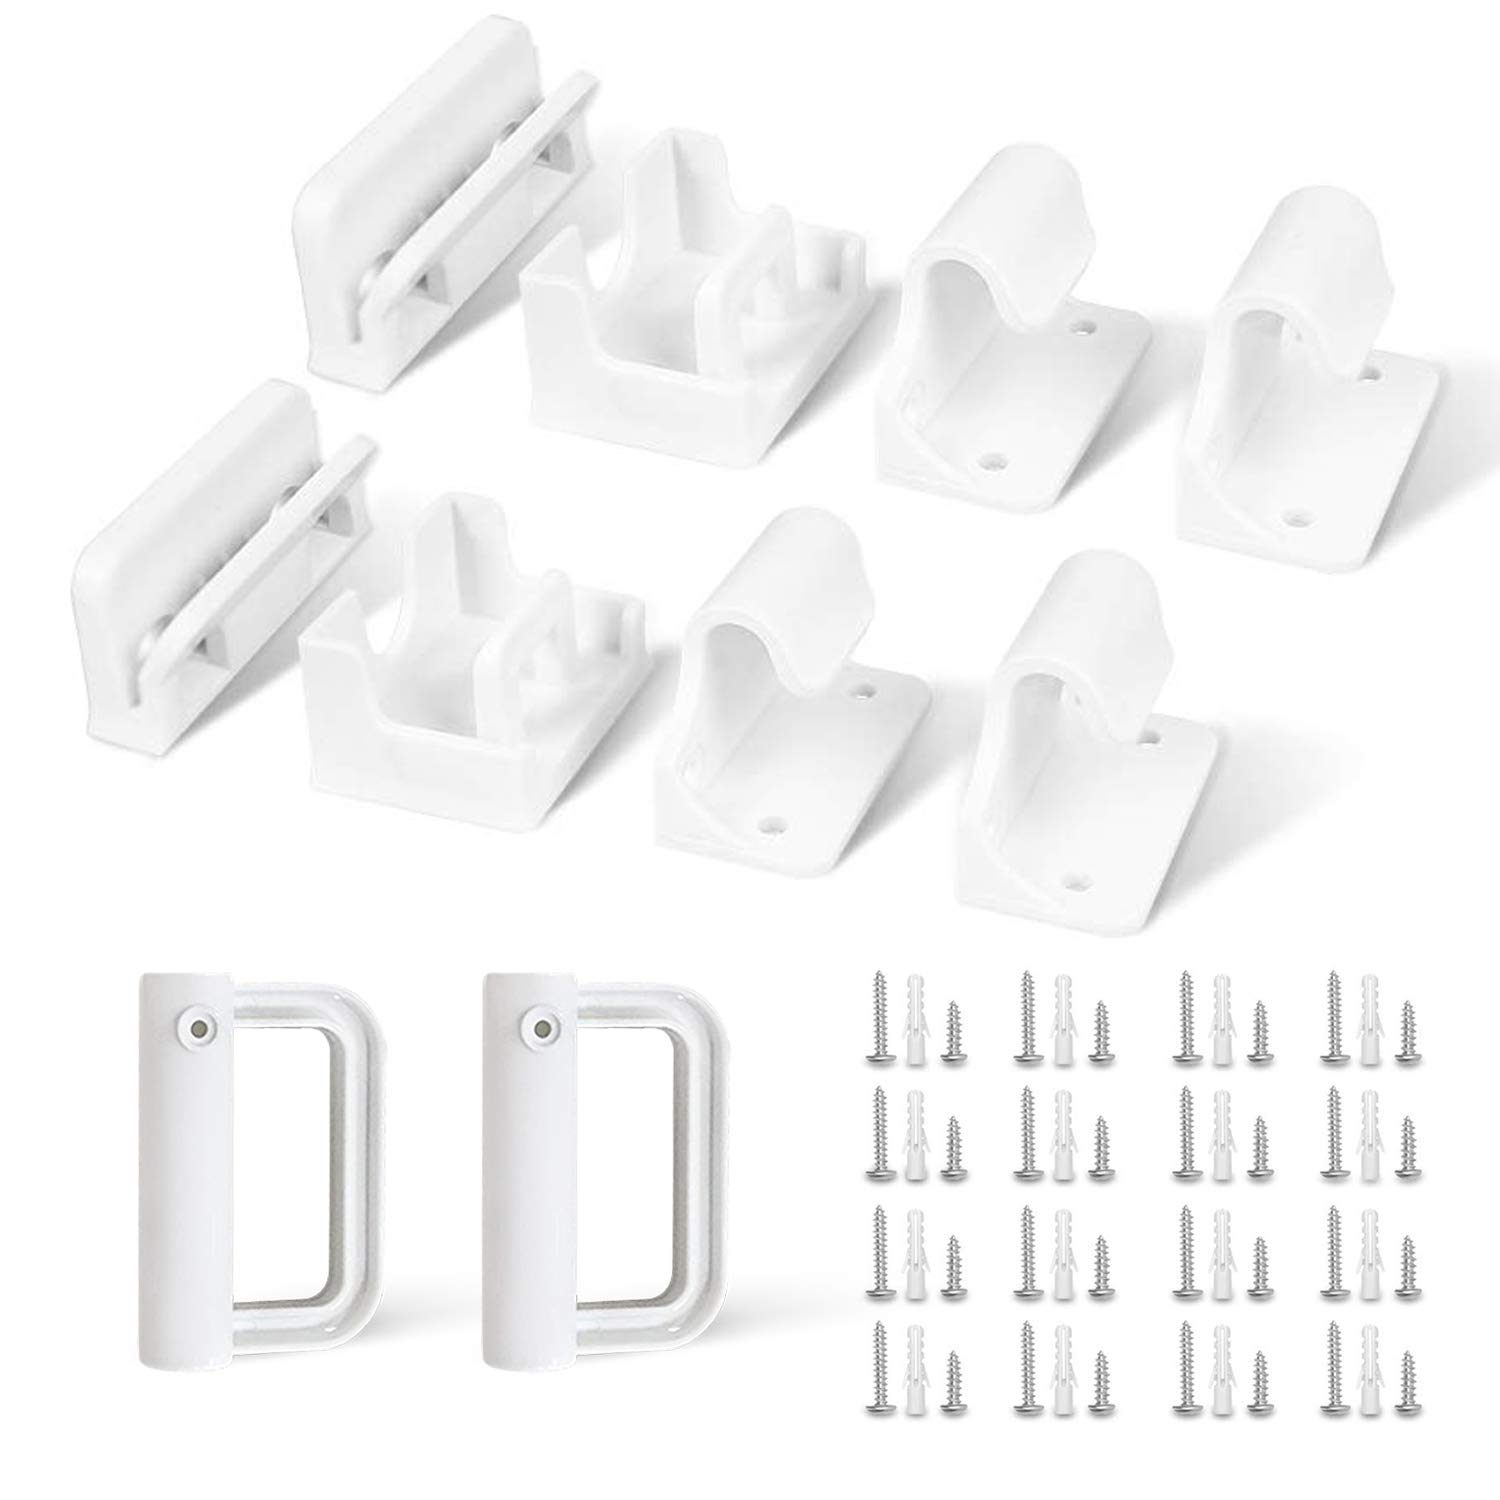 Betertek Hardware Replacement Accessories Brackets for Retractable mesh Baby and pet Gates Full Set Wall Mounting Parts Kit.